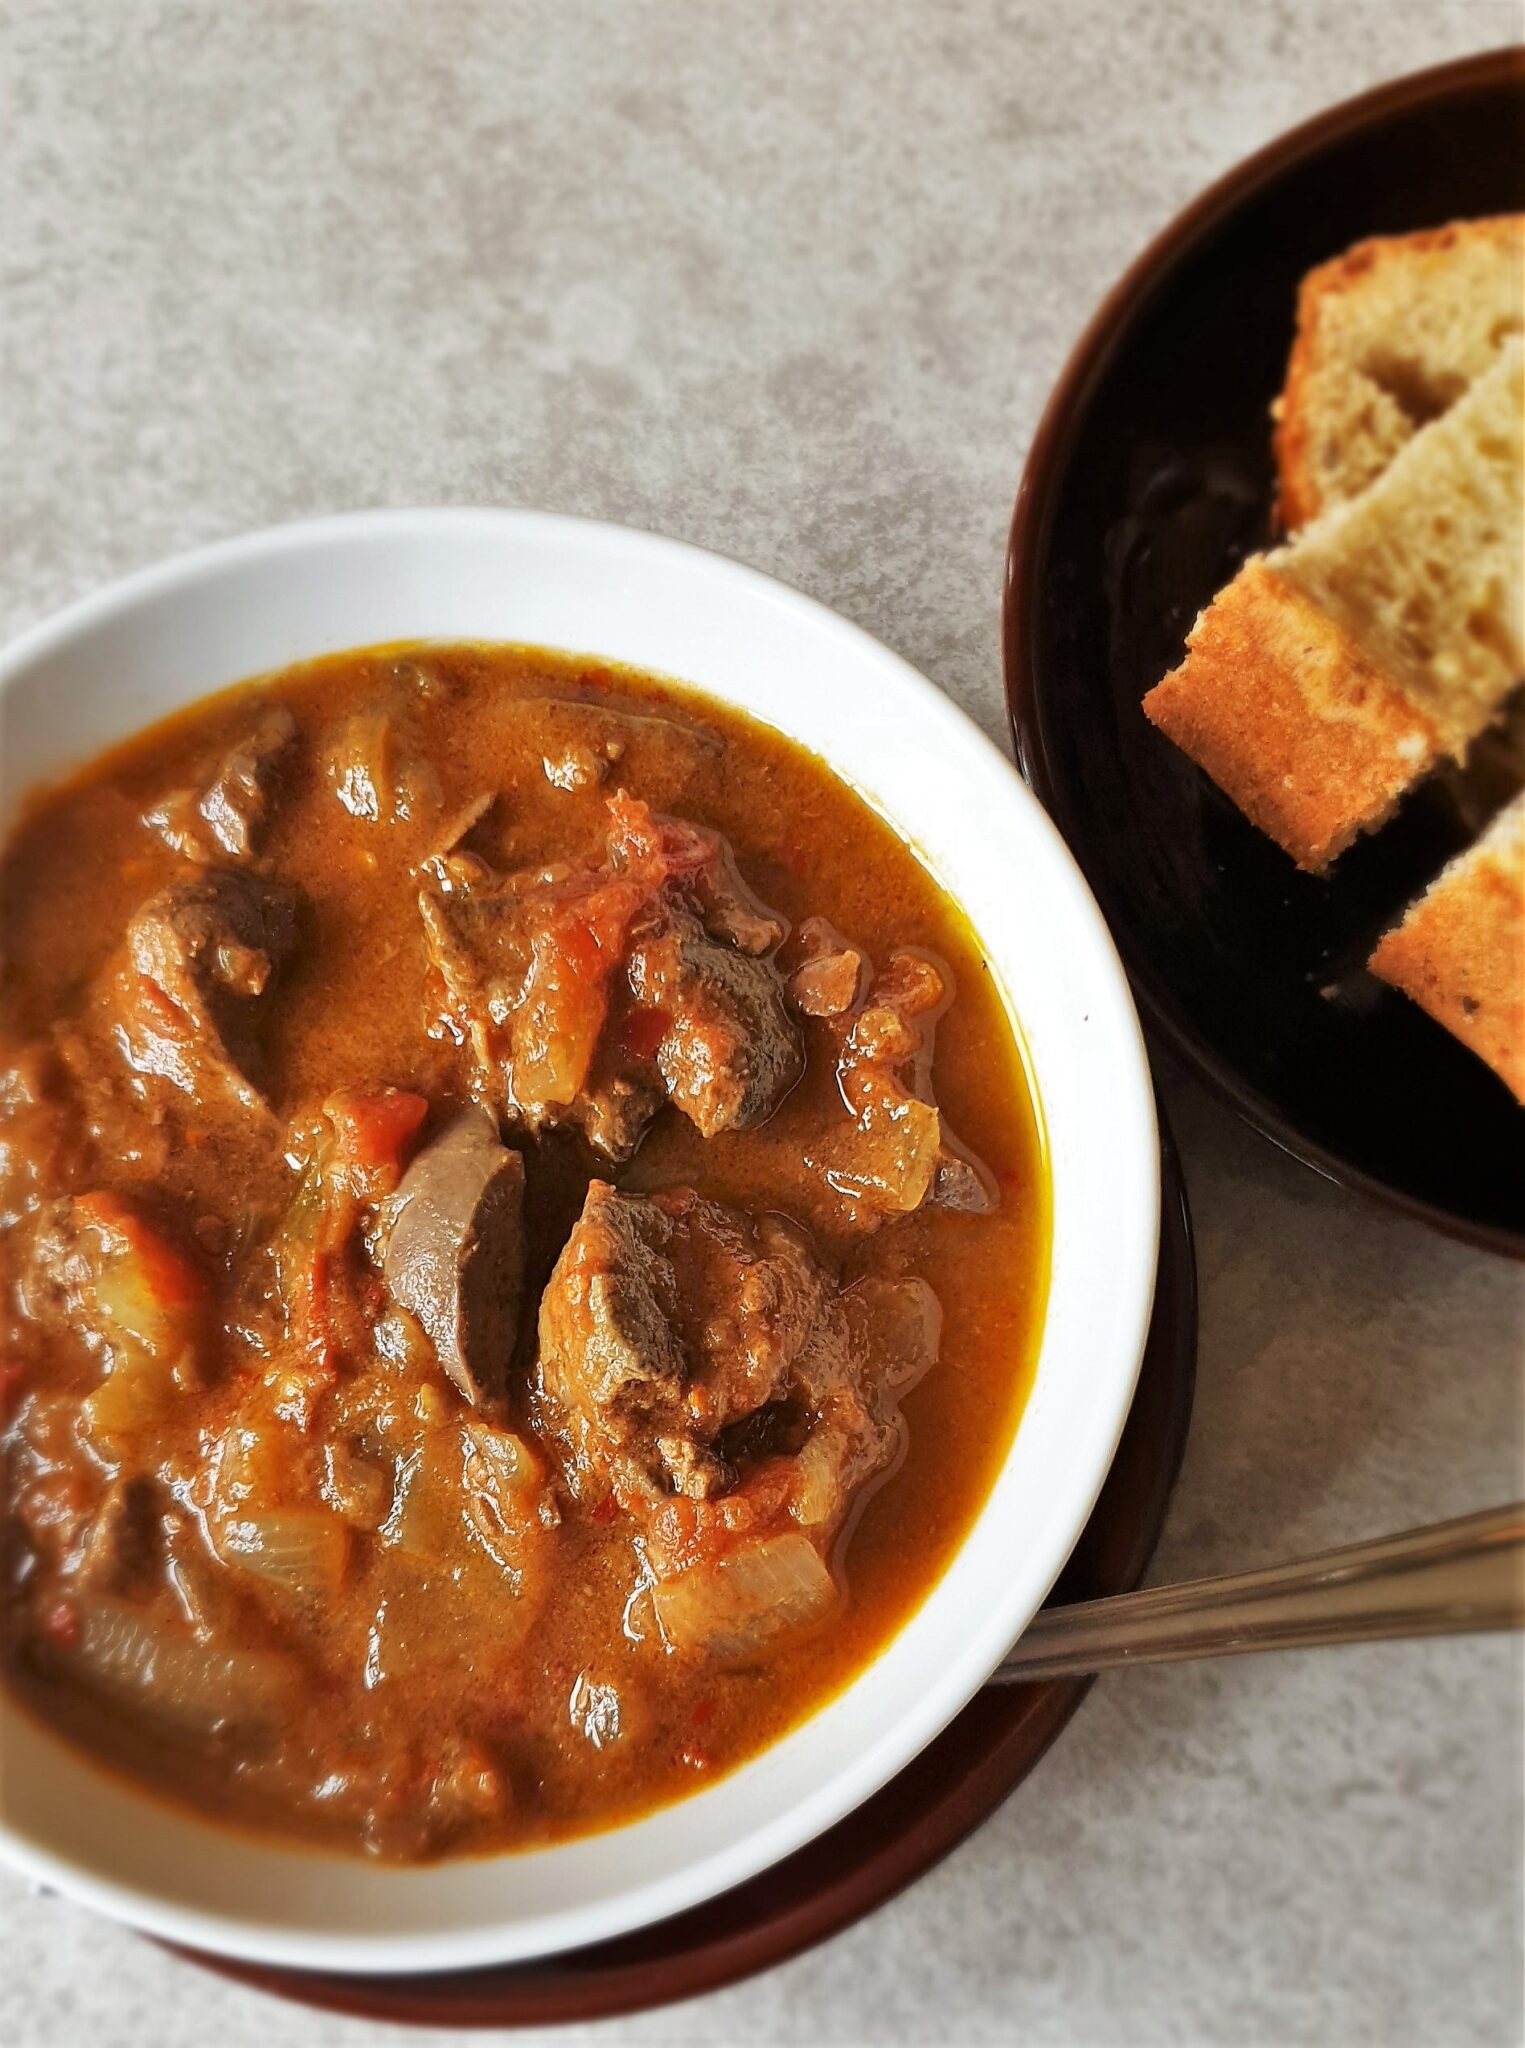 A bowl of peri peri chicken livers with crusty bread.